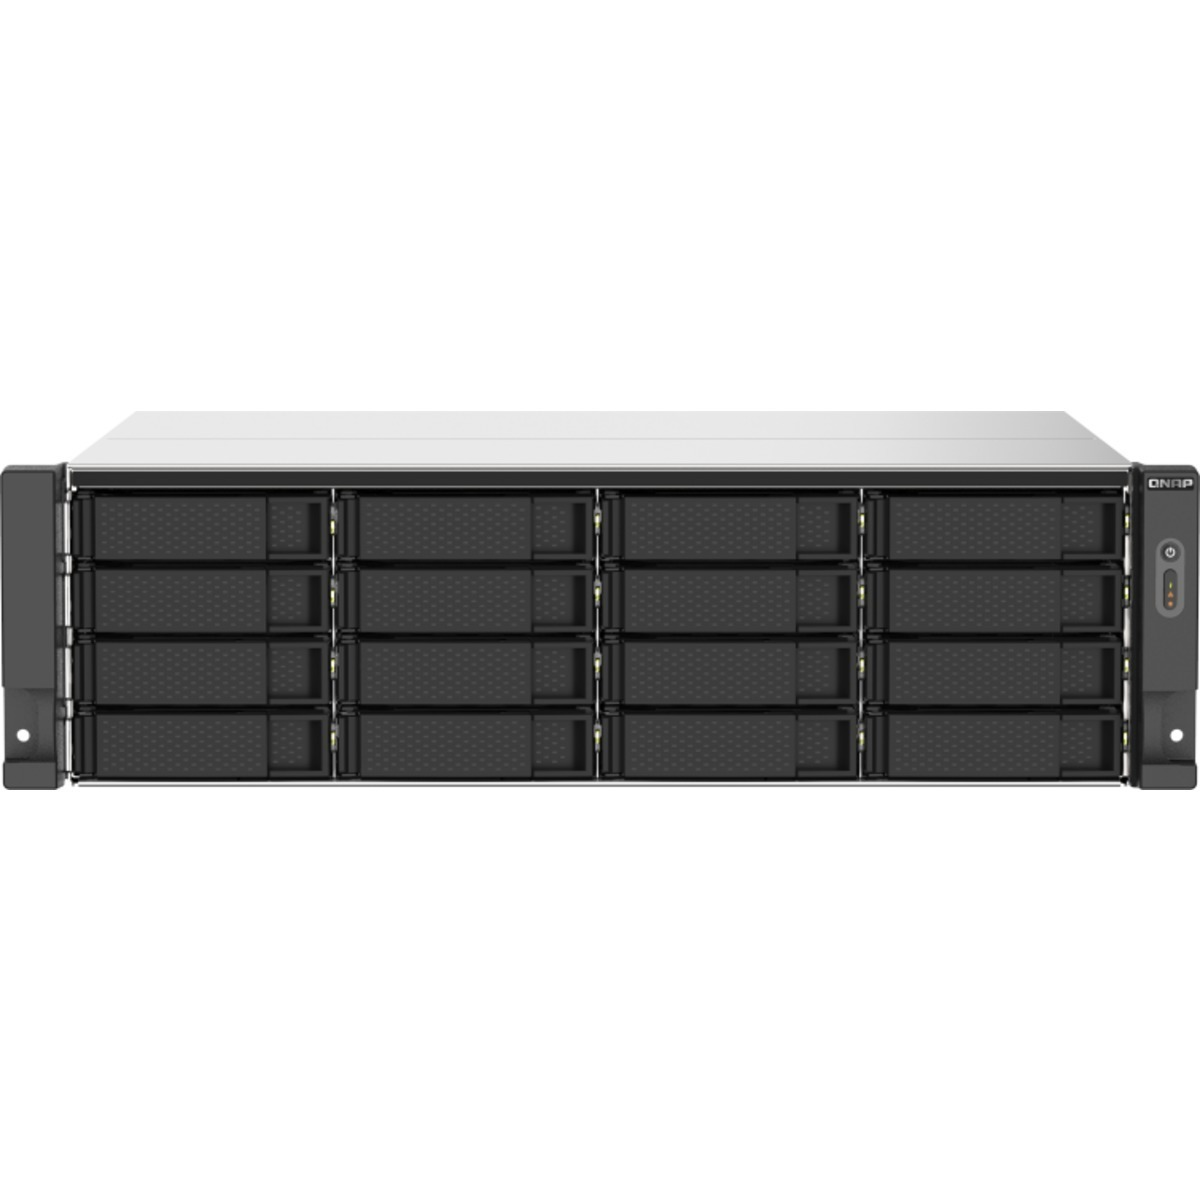 buy $4804 QNAP TS-1673AU-RP 64tb RackMount NAS - Network Attached Storage Device 16x4000gb Toshiba MD04ACA Series MD04ACA400 3.5 7200rpm SATA 6Gb/s HDD CONSUMER Class Drives Installed - Burn-In Tested - ON SALE - FREE RAM UPGRADE - nas headquarters buy network attached storage server device das new raid-5 free shipping usa black friday cyber monday week month christmas holiday sale TS-1673AU-RP